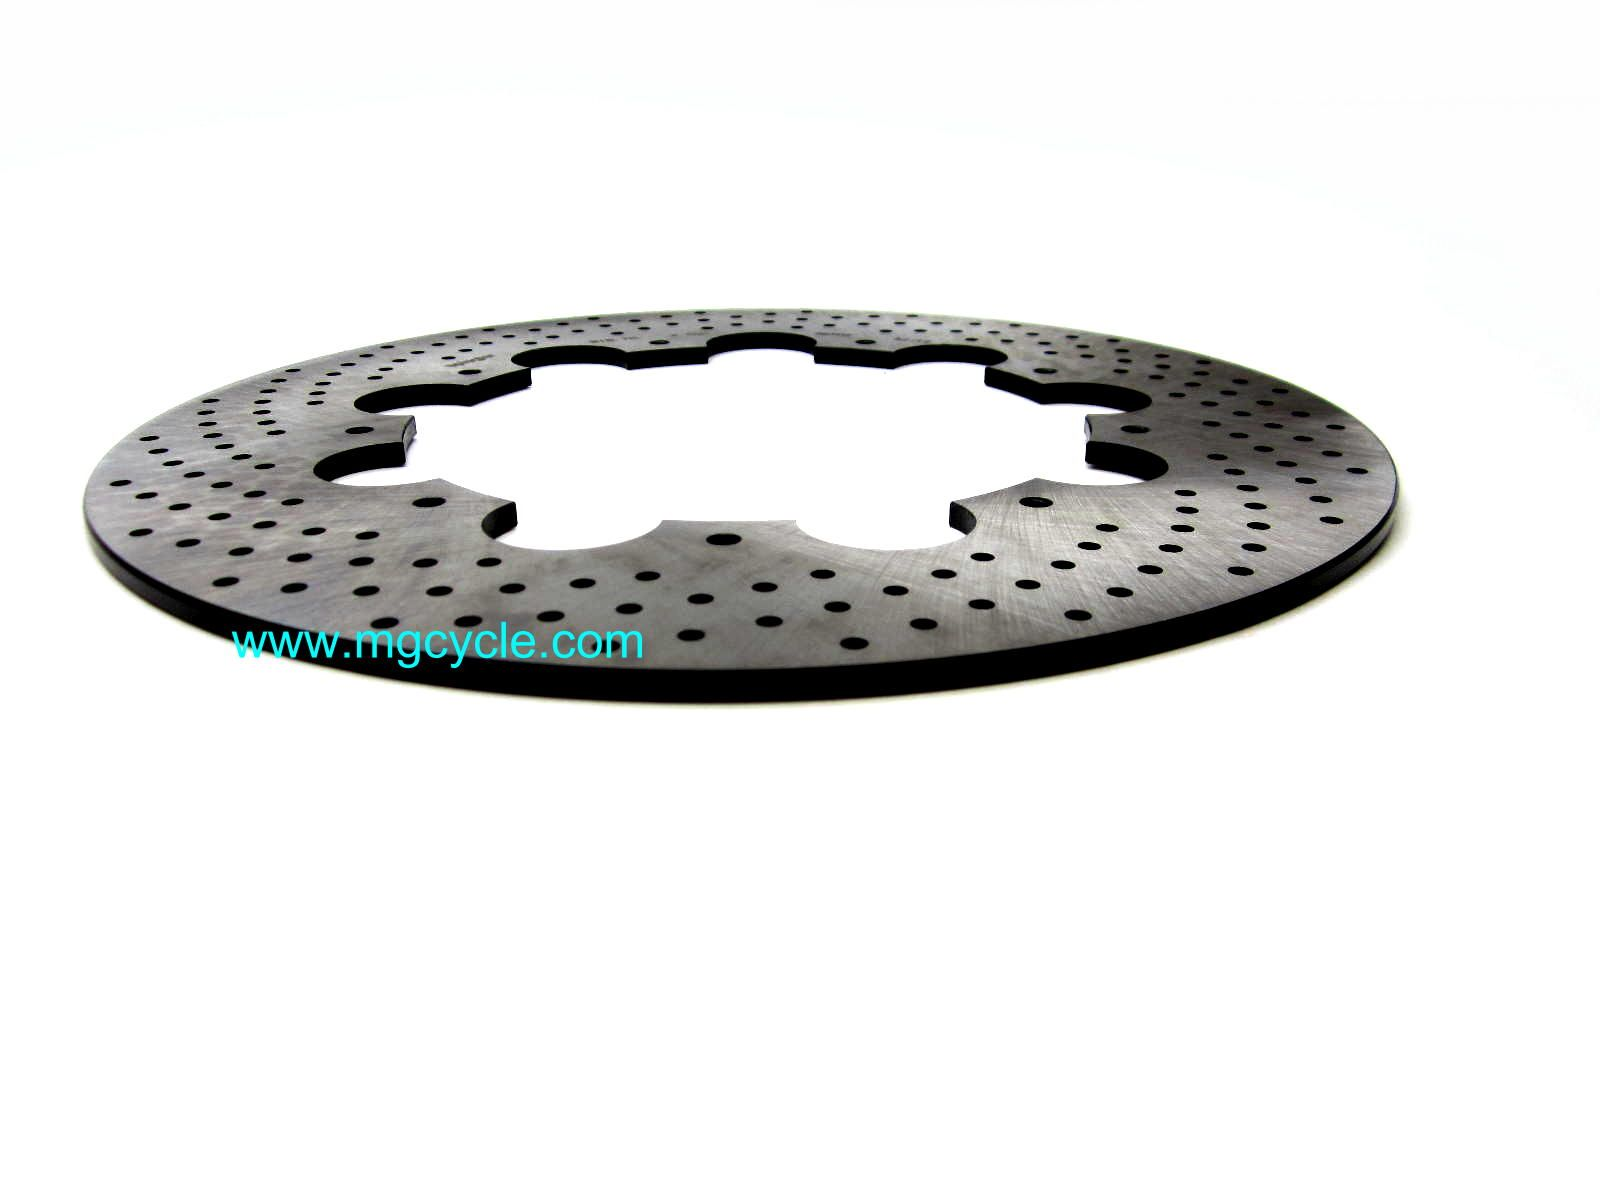 280mm drilled stainless brake disc Ducati bevel, front and rear